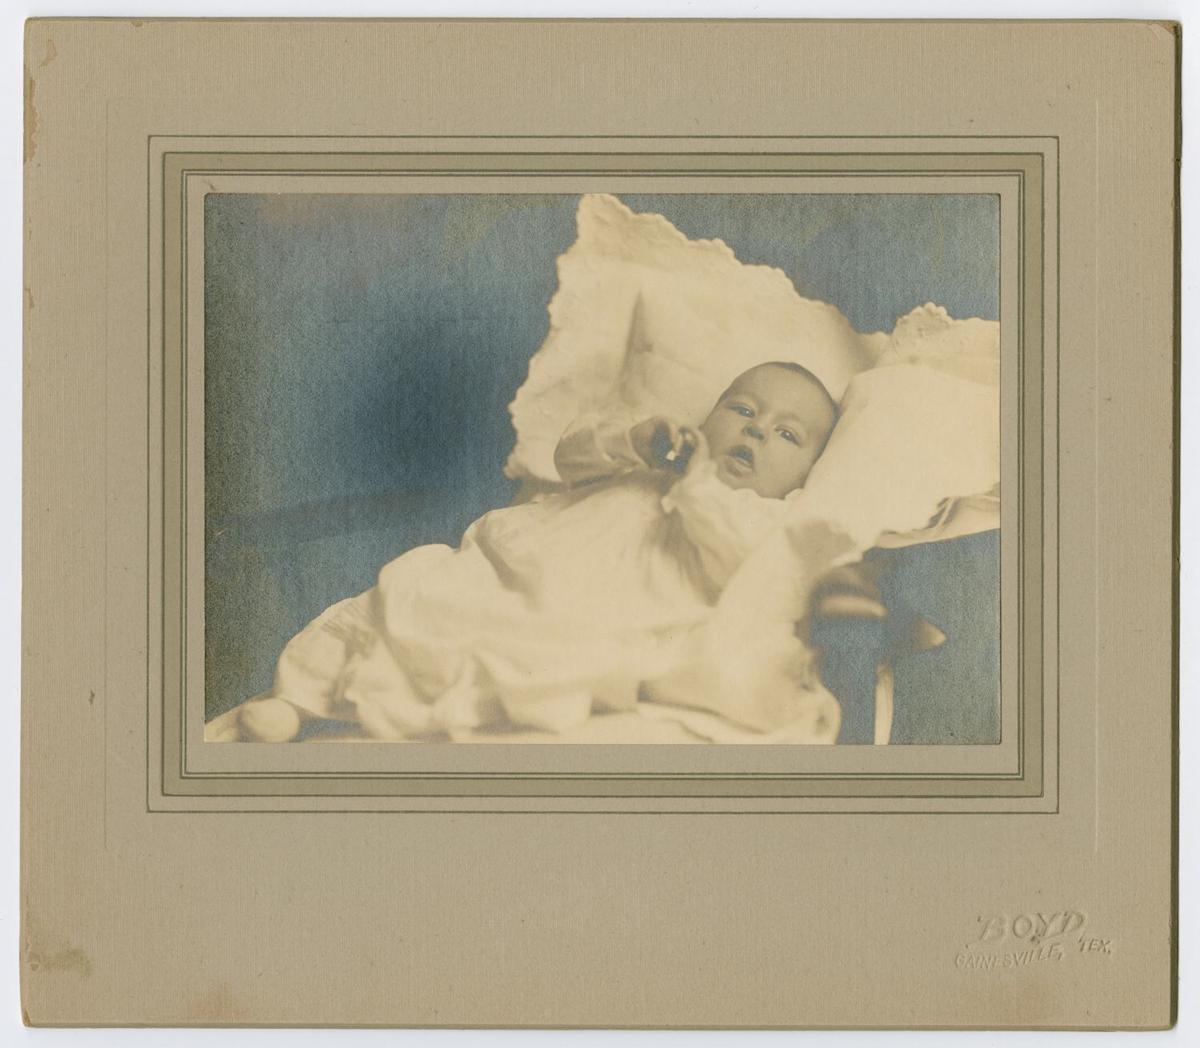 Photograph of Charles Williams as a baby. DATE: 1888/1889 CREATOR: Boyd, Frank